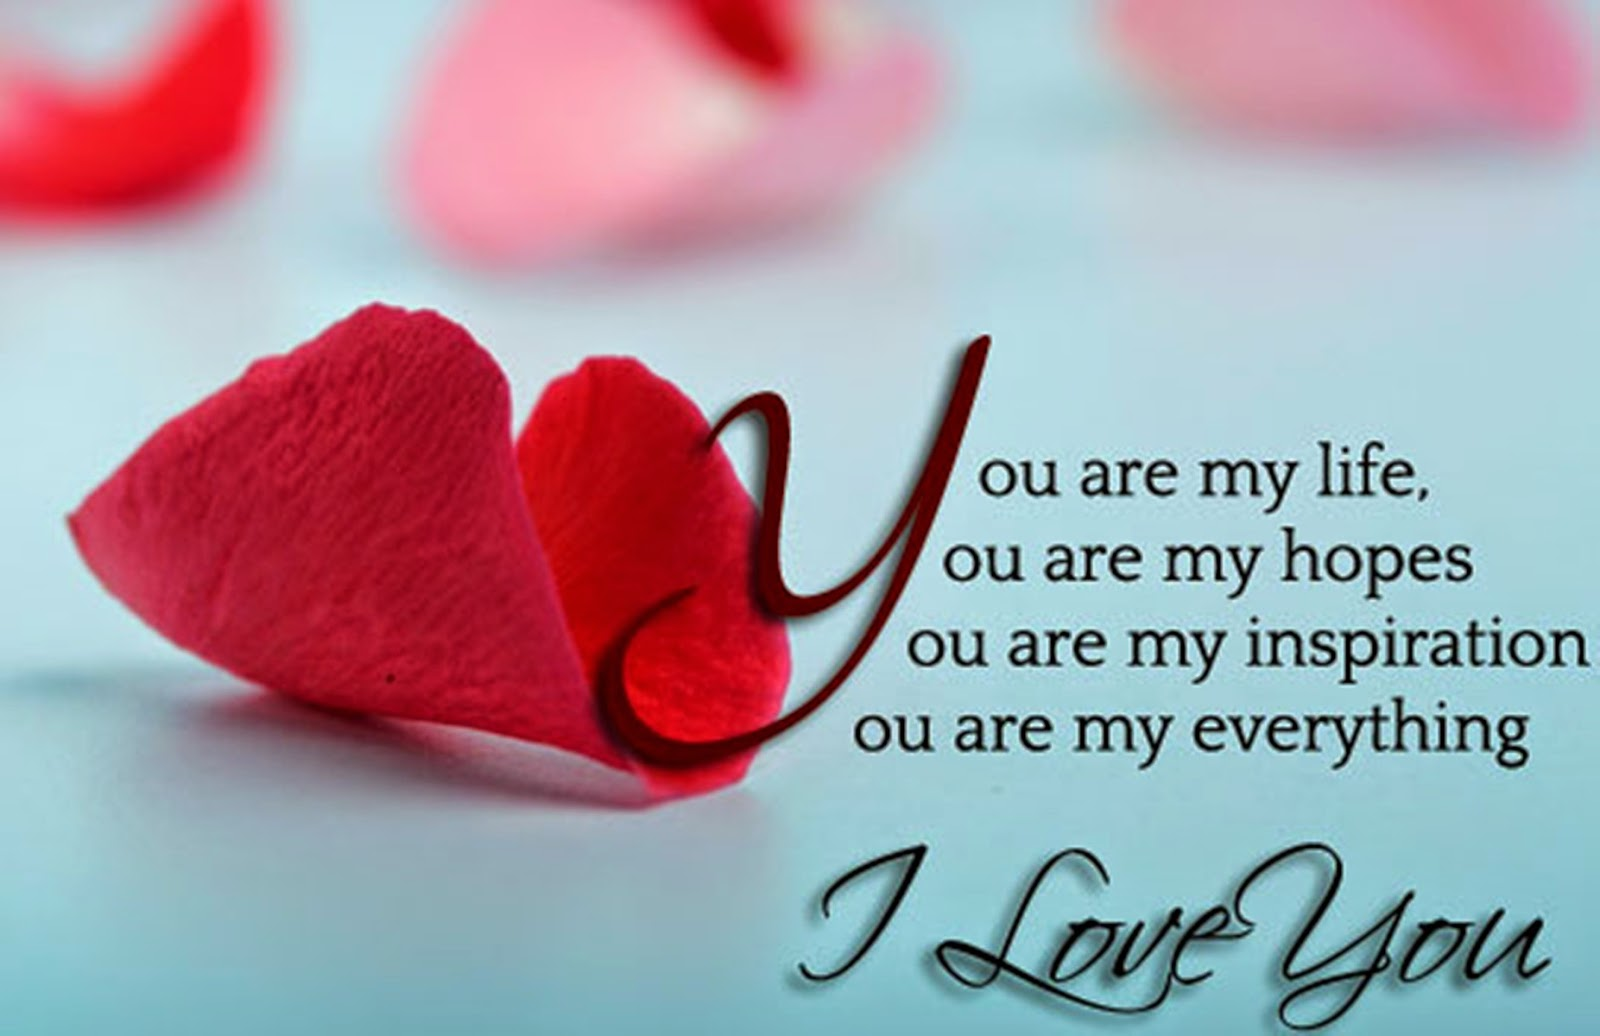 Love Wallpaper Msg : LOVE MESSAGES, WALLPAPERS - Beautiful Messages